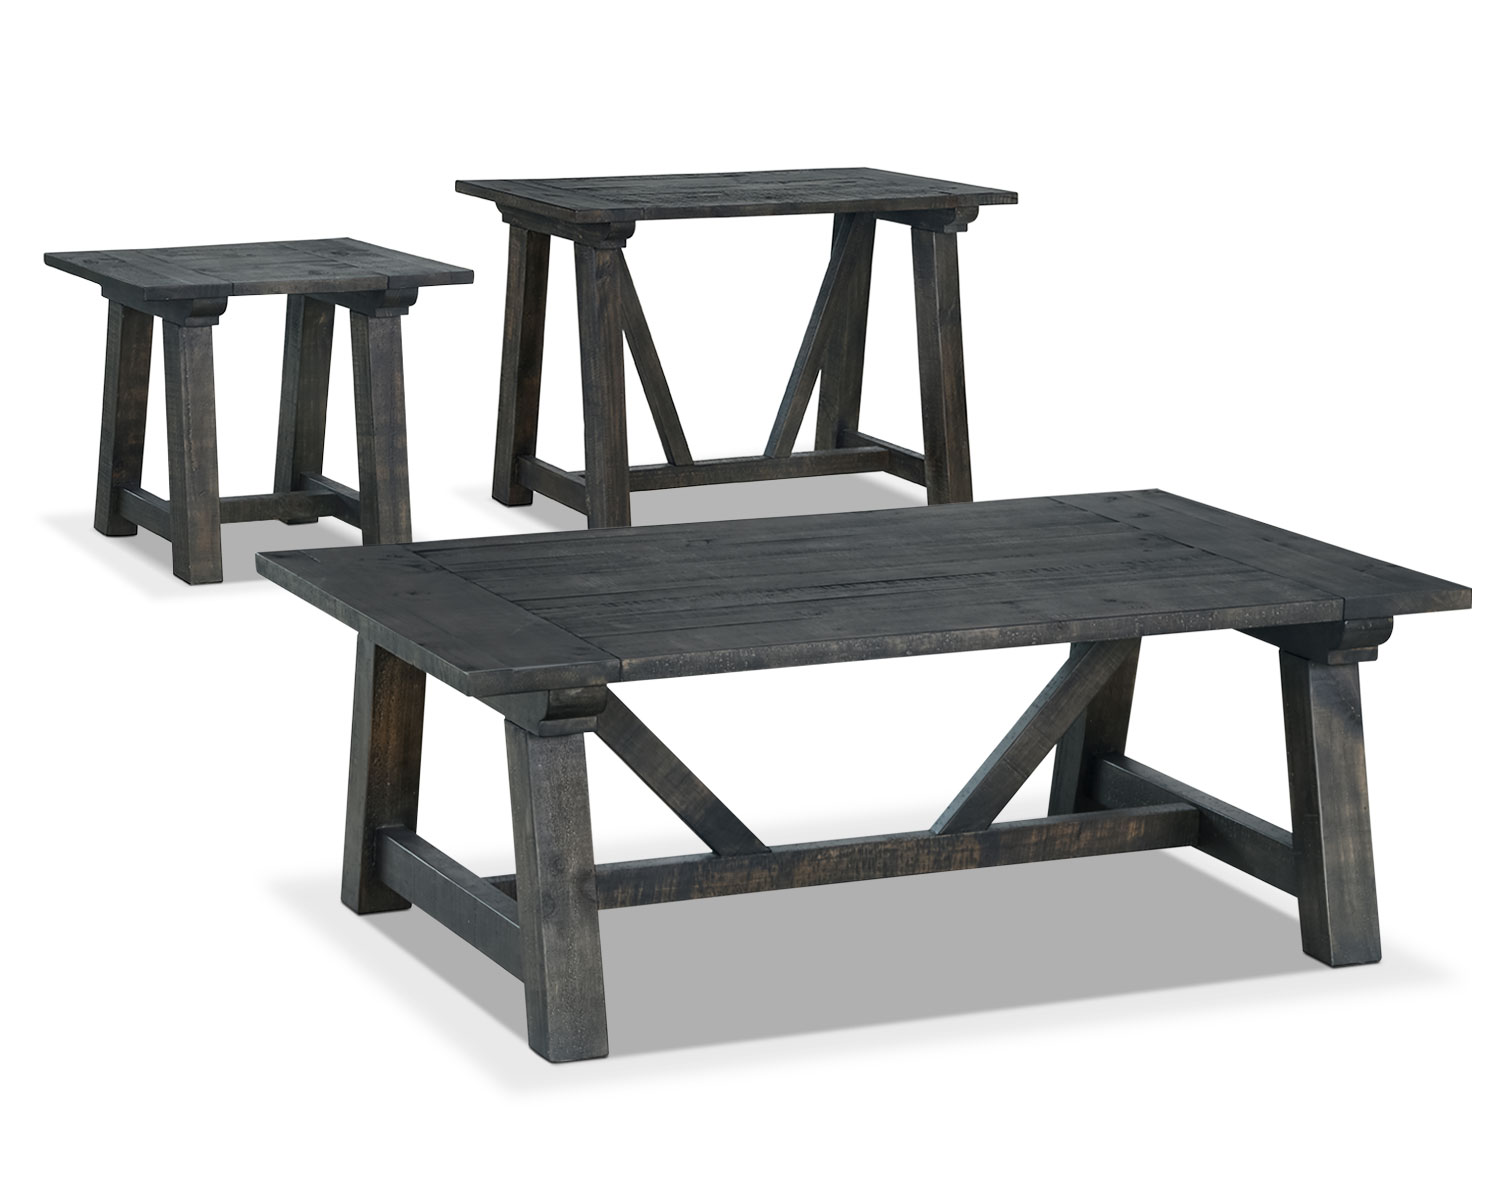 The Townbrook Collection - Weathered Charcoal